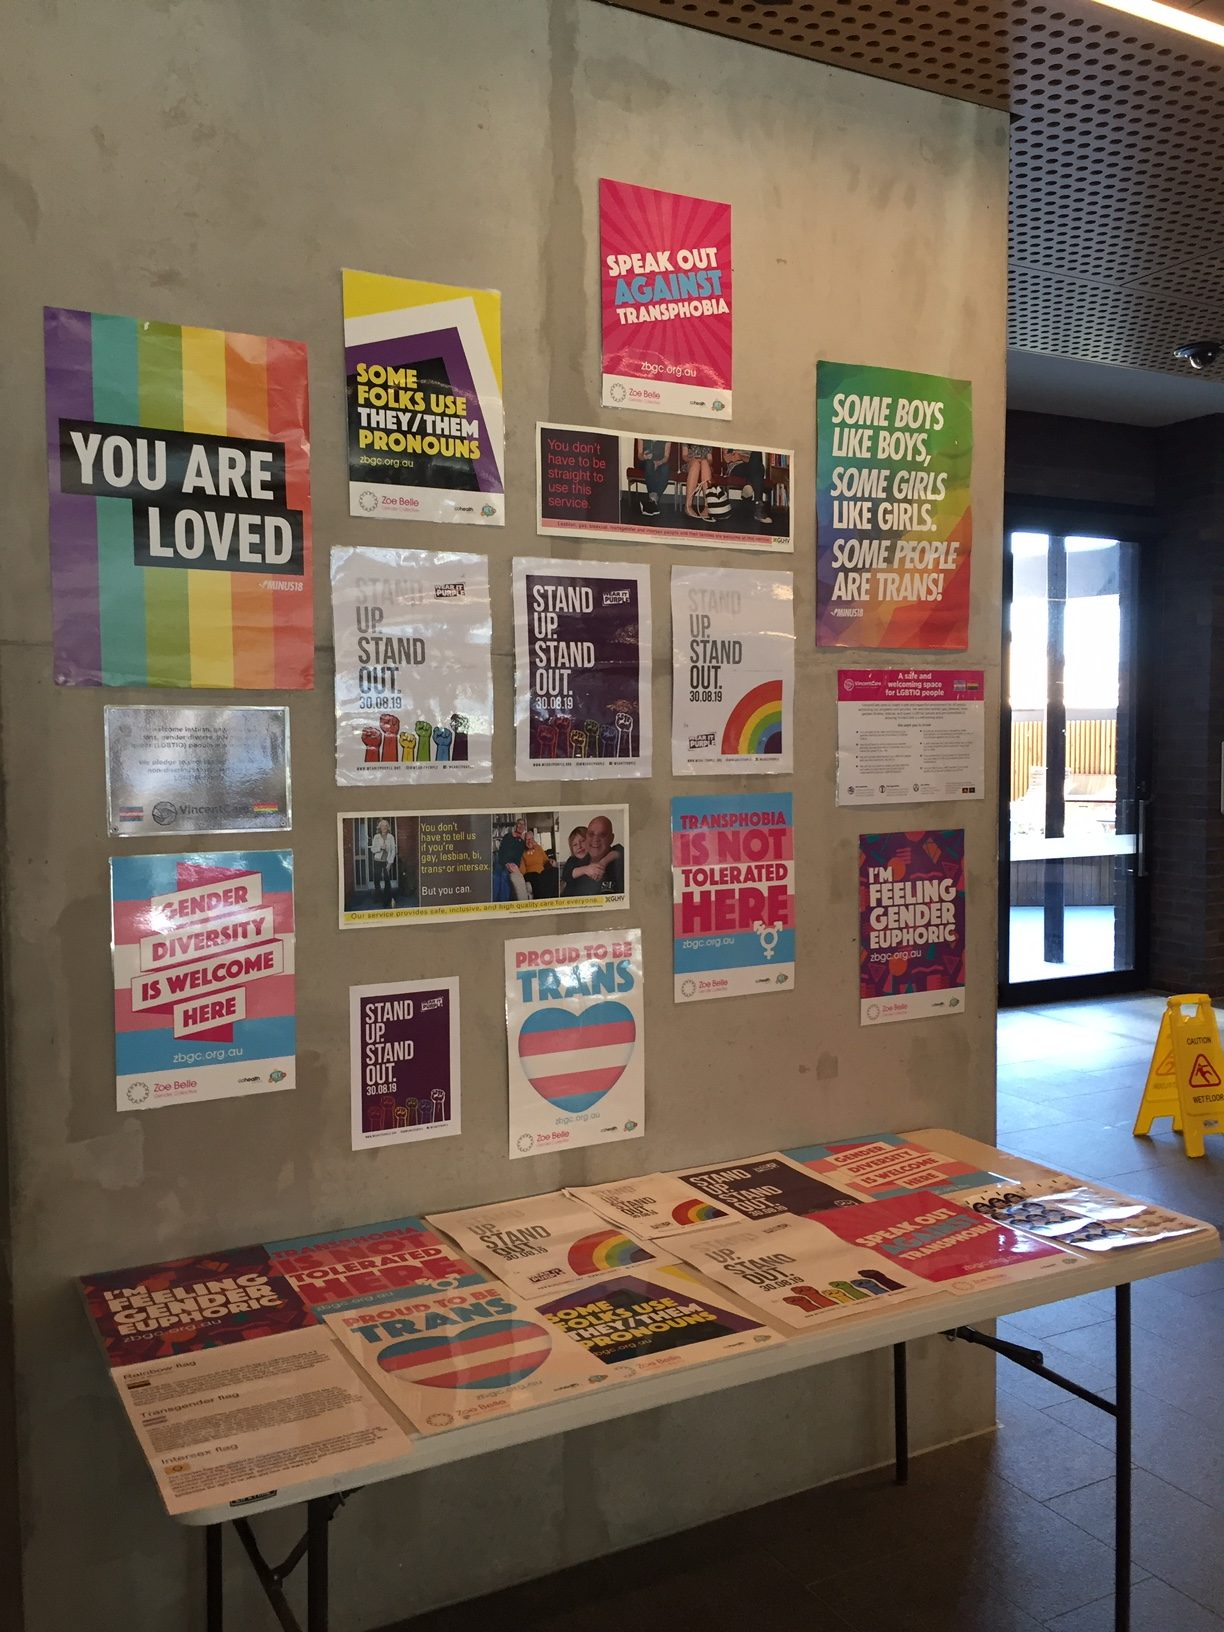 LGBTIQ posters and flyers